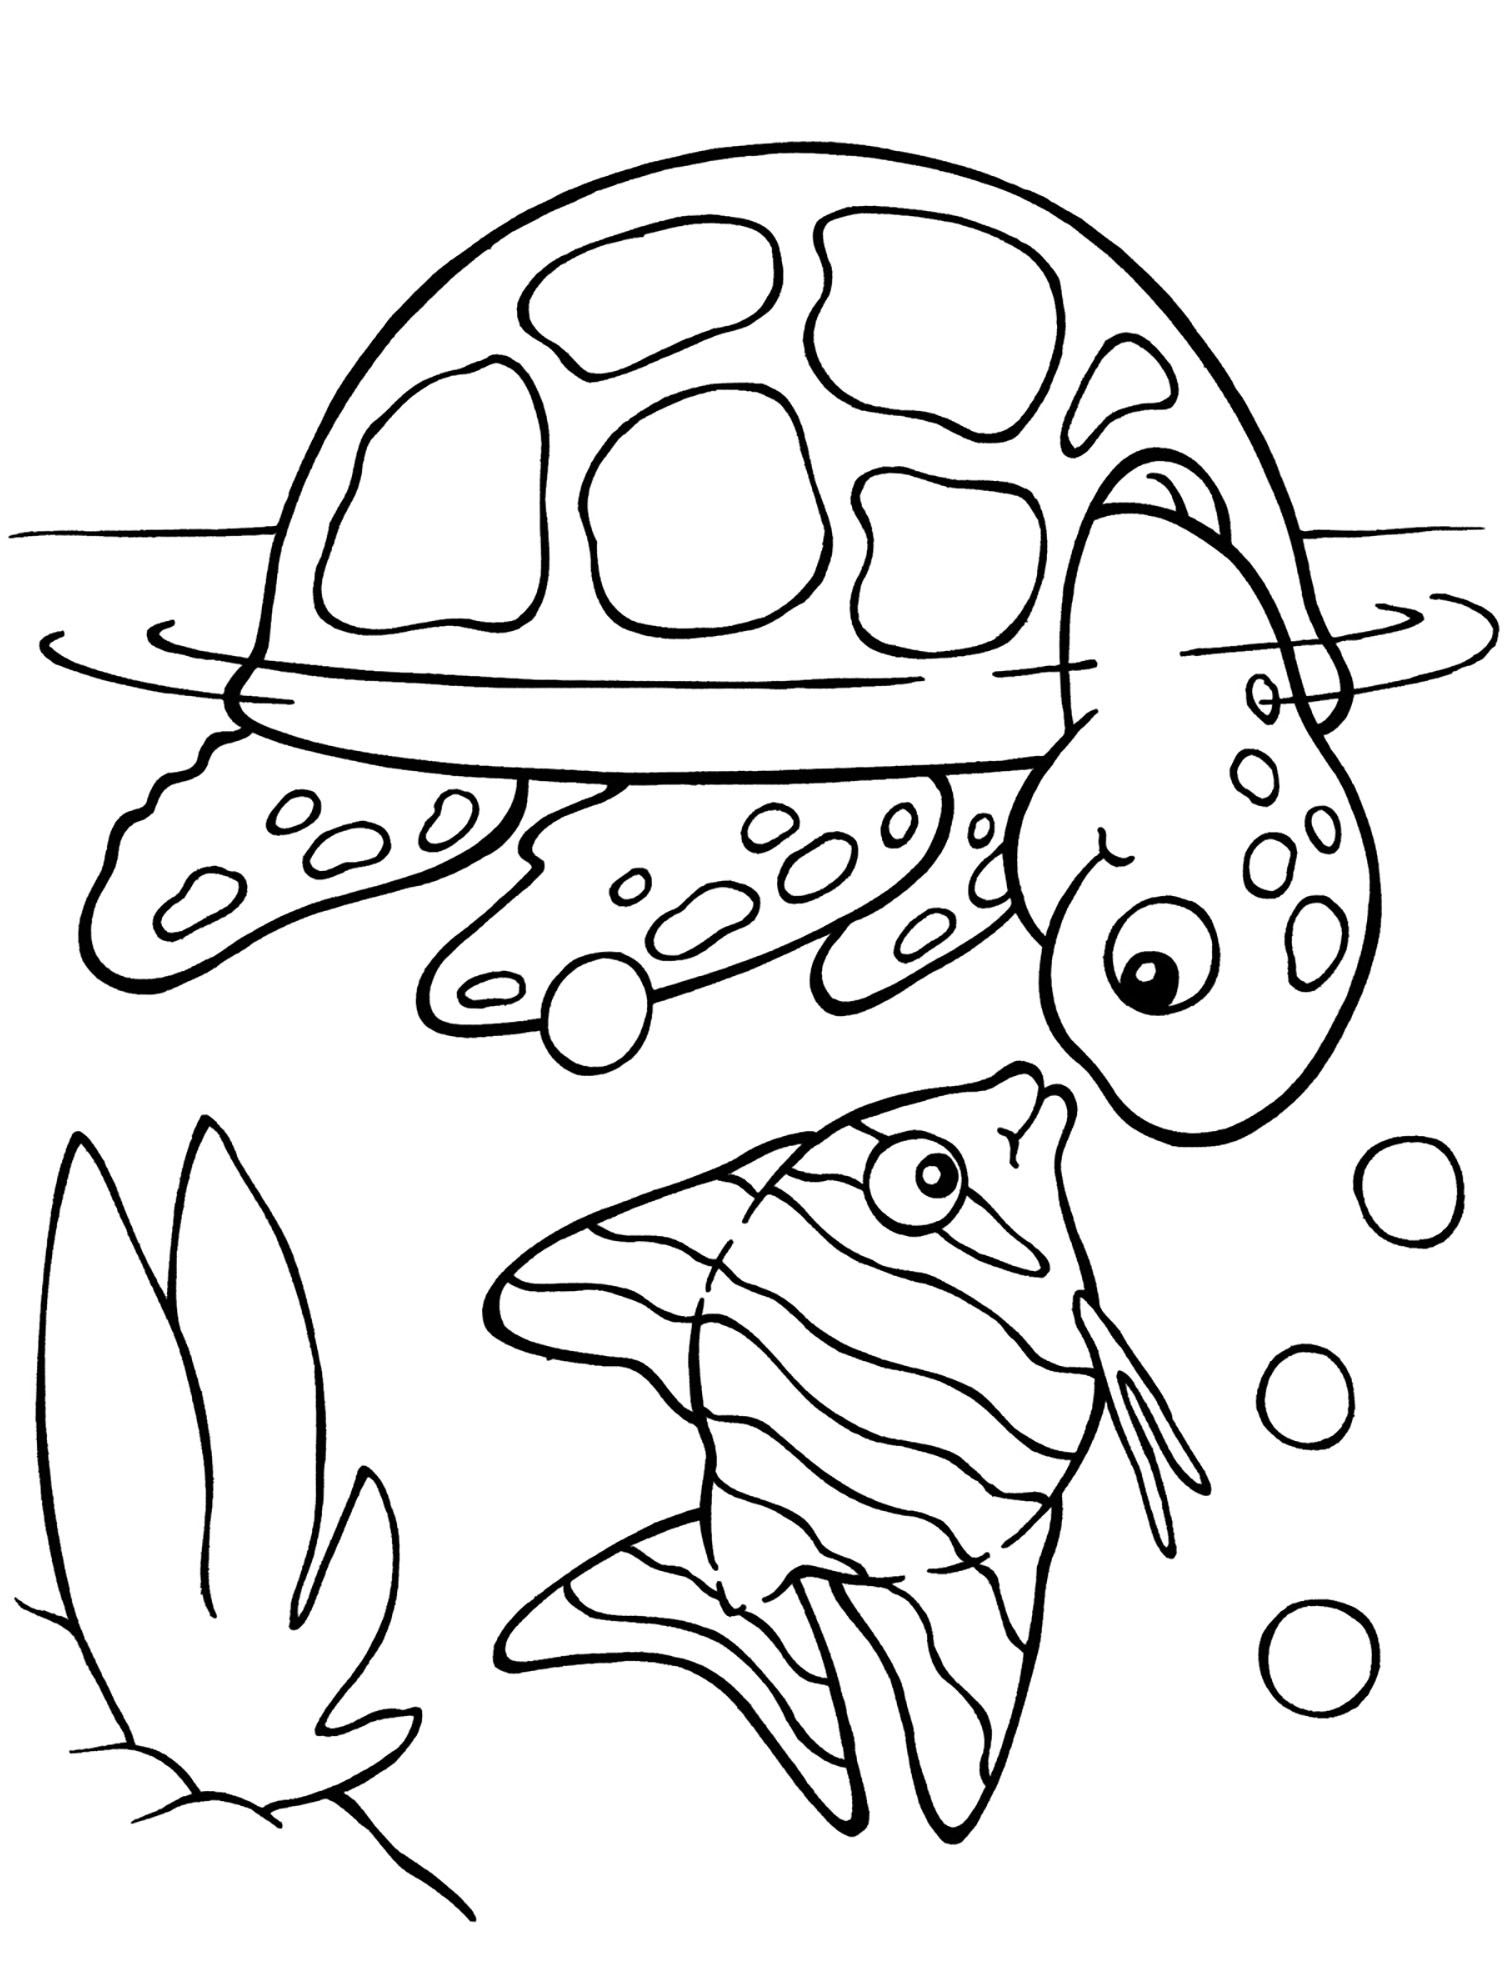 Colouring page : Turtles to colour for kids